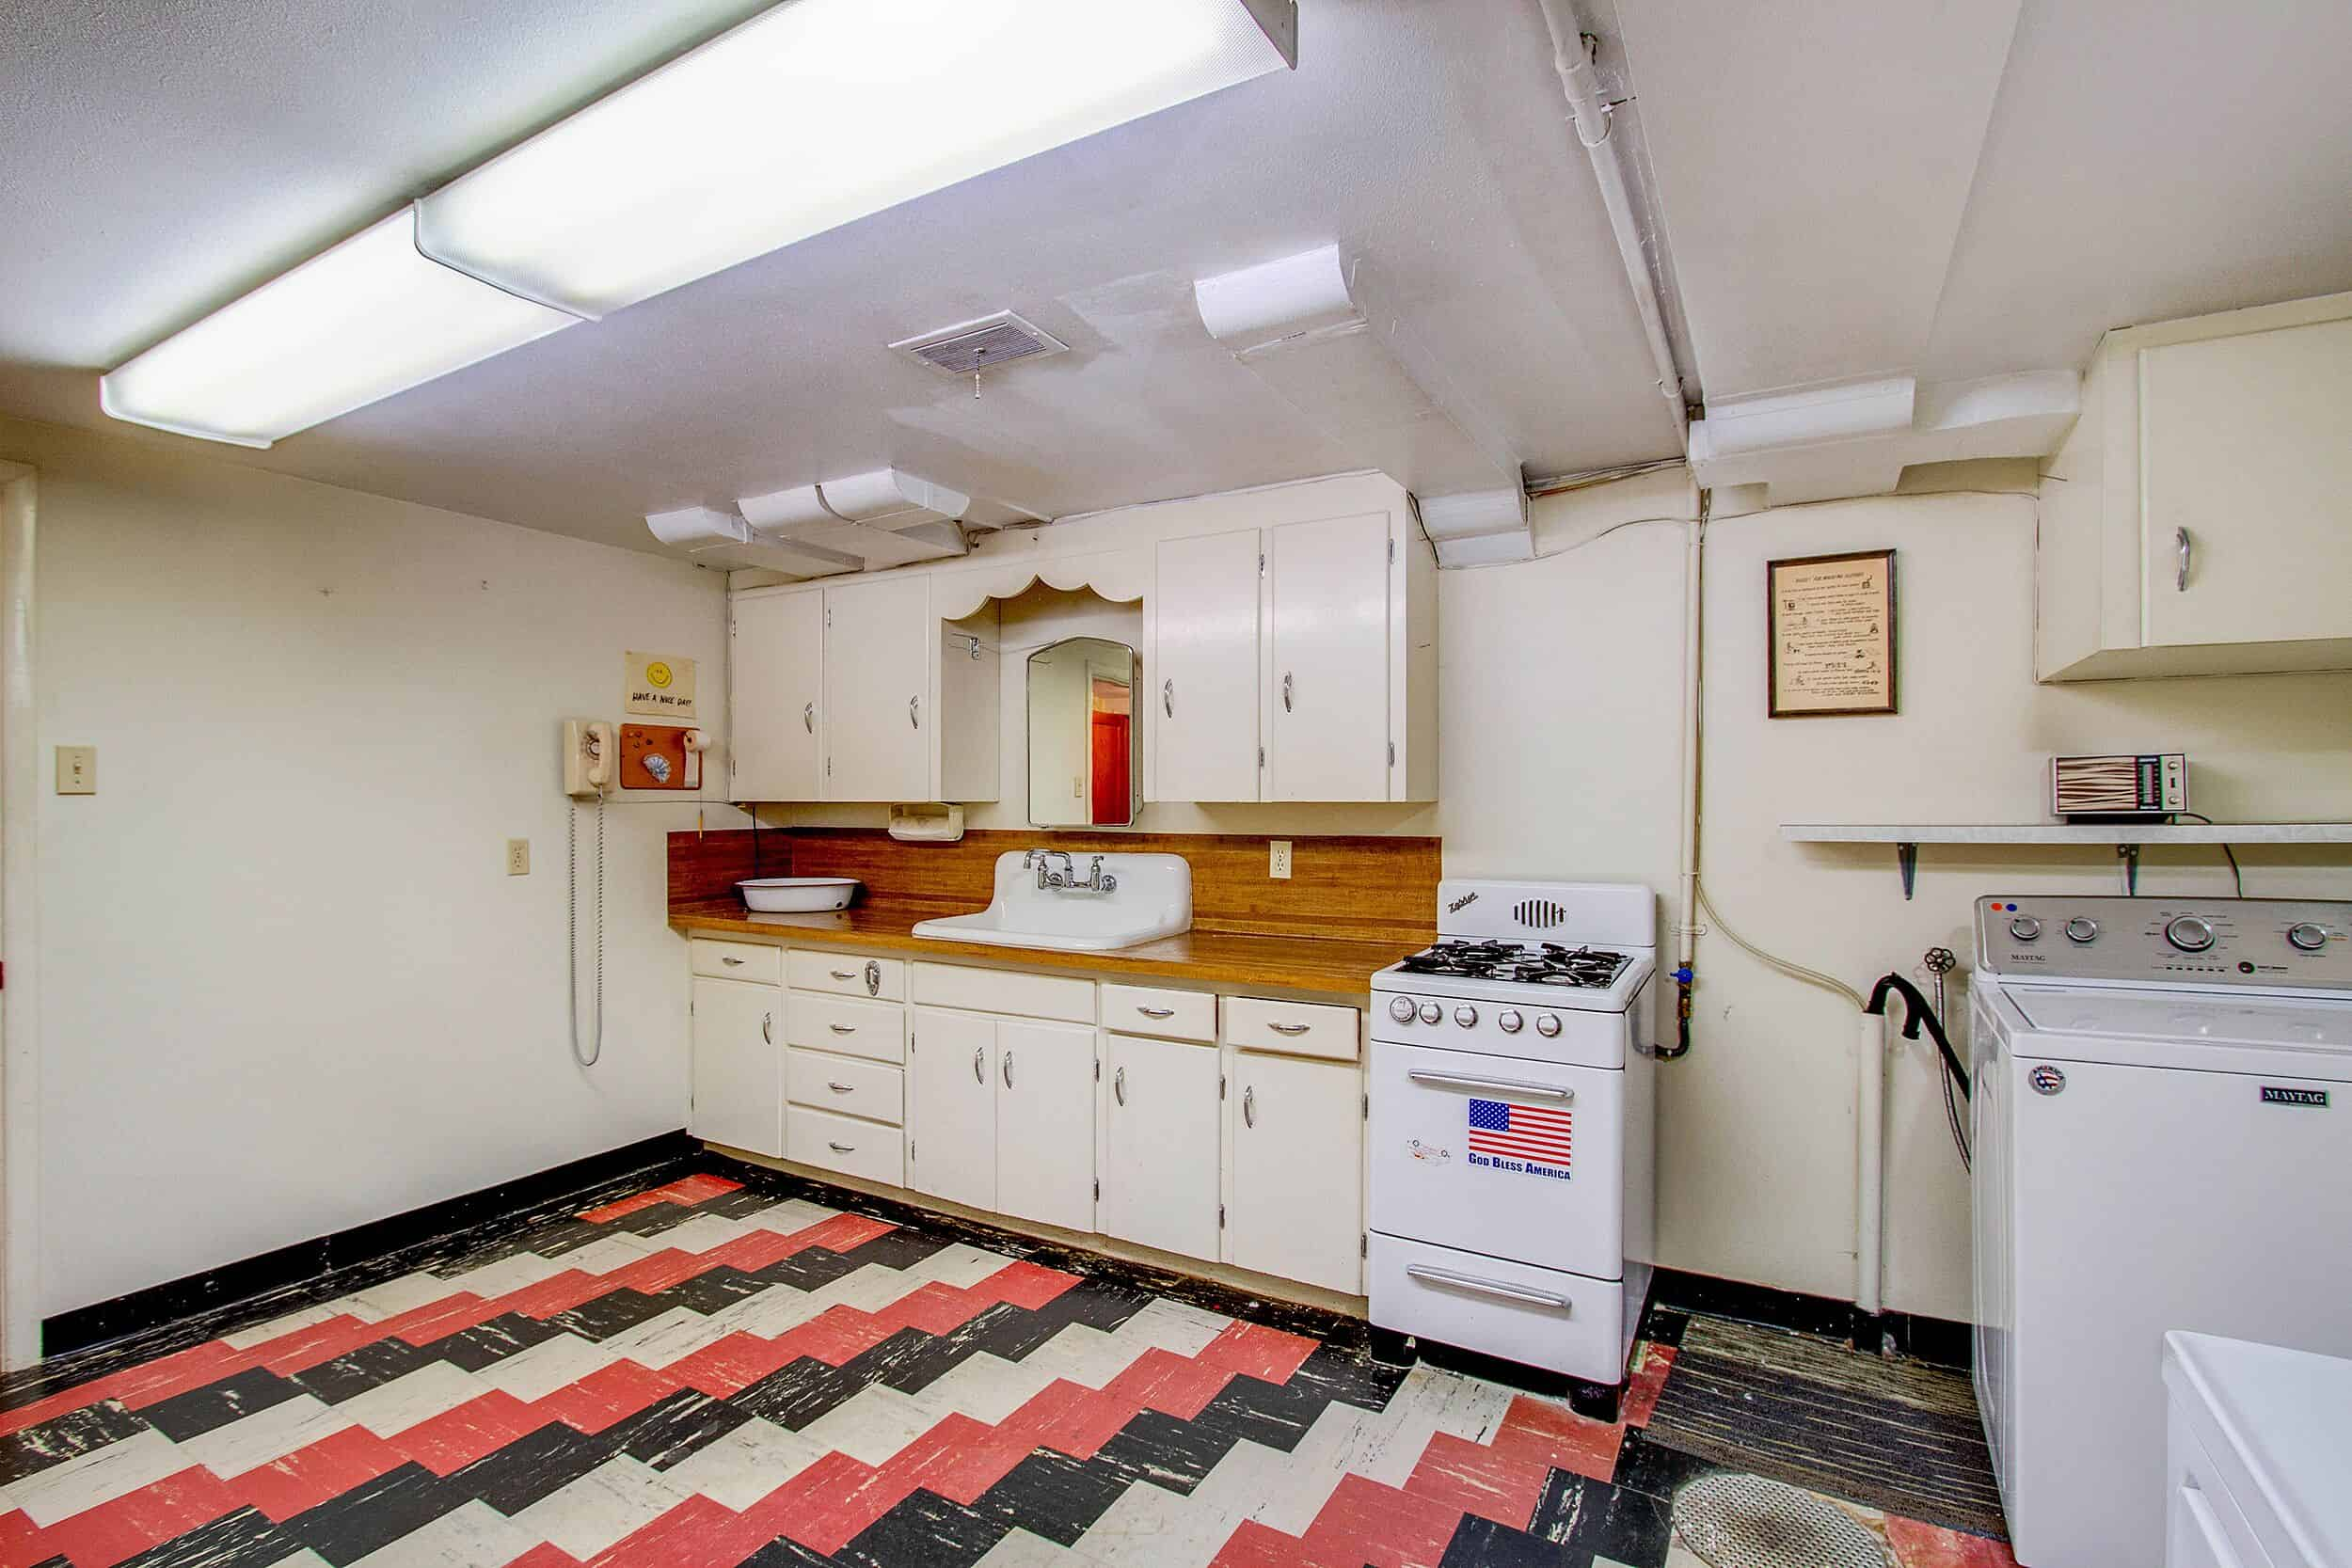 Laundry Room and Second Kitchen